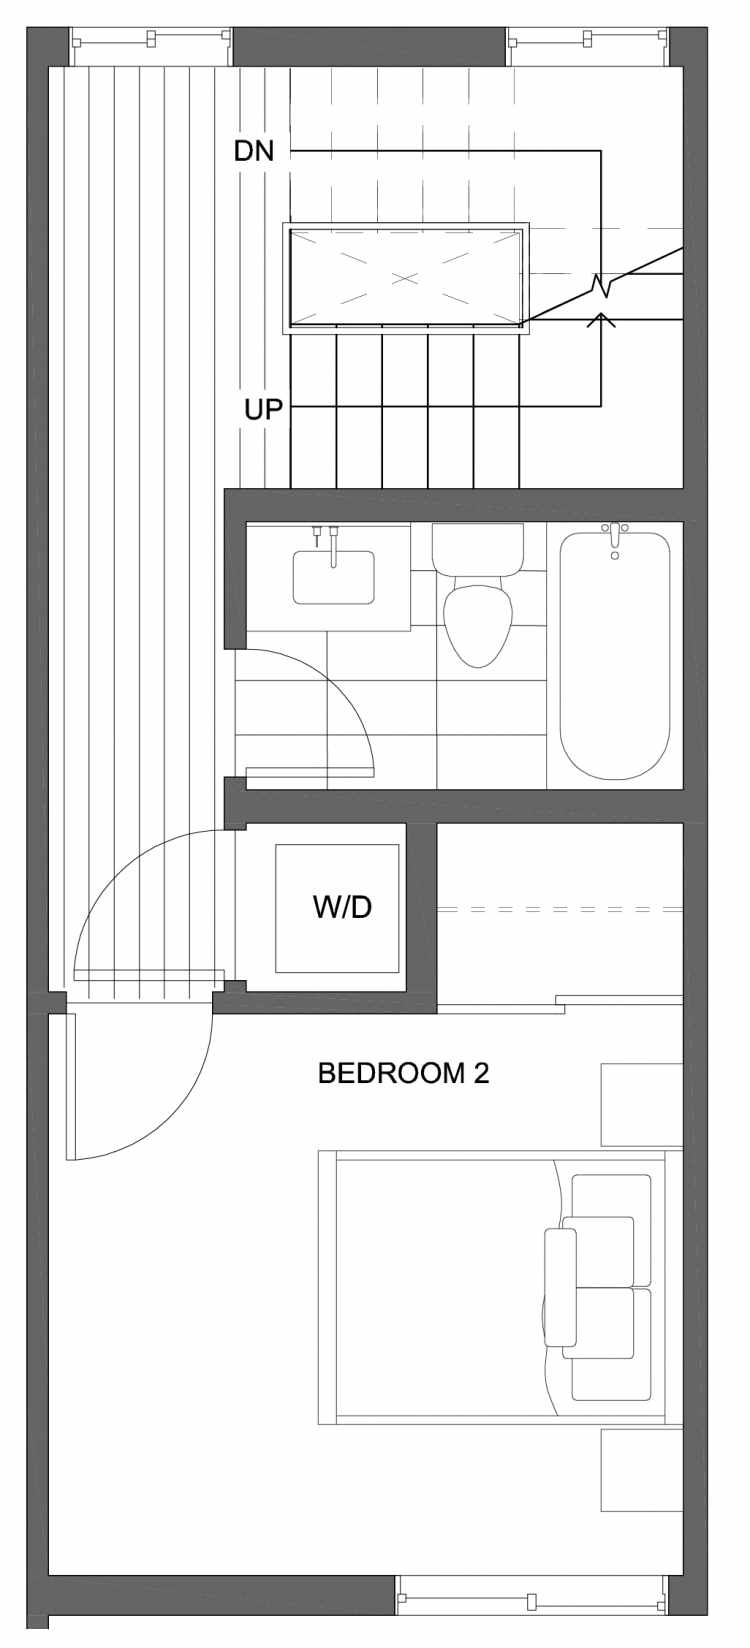 Second Floor Plan of 10429E Alderbrook Pl NW, One of the Jasmine Townhomes in the Greenwood Neighborhood of Seattle